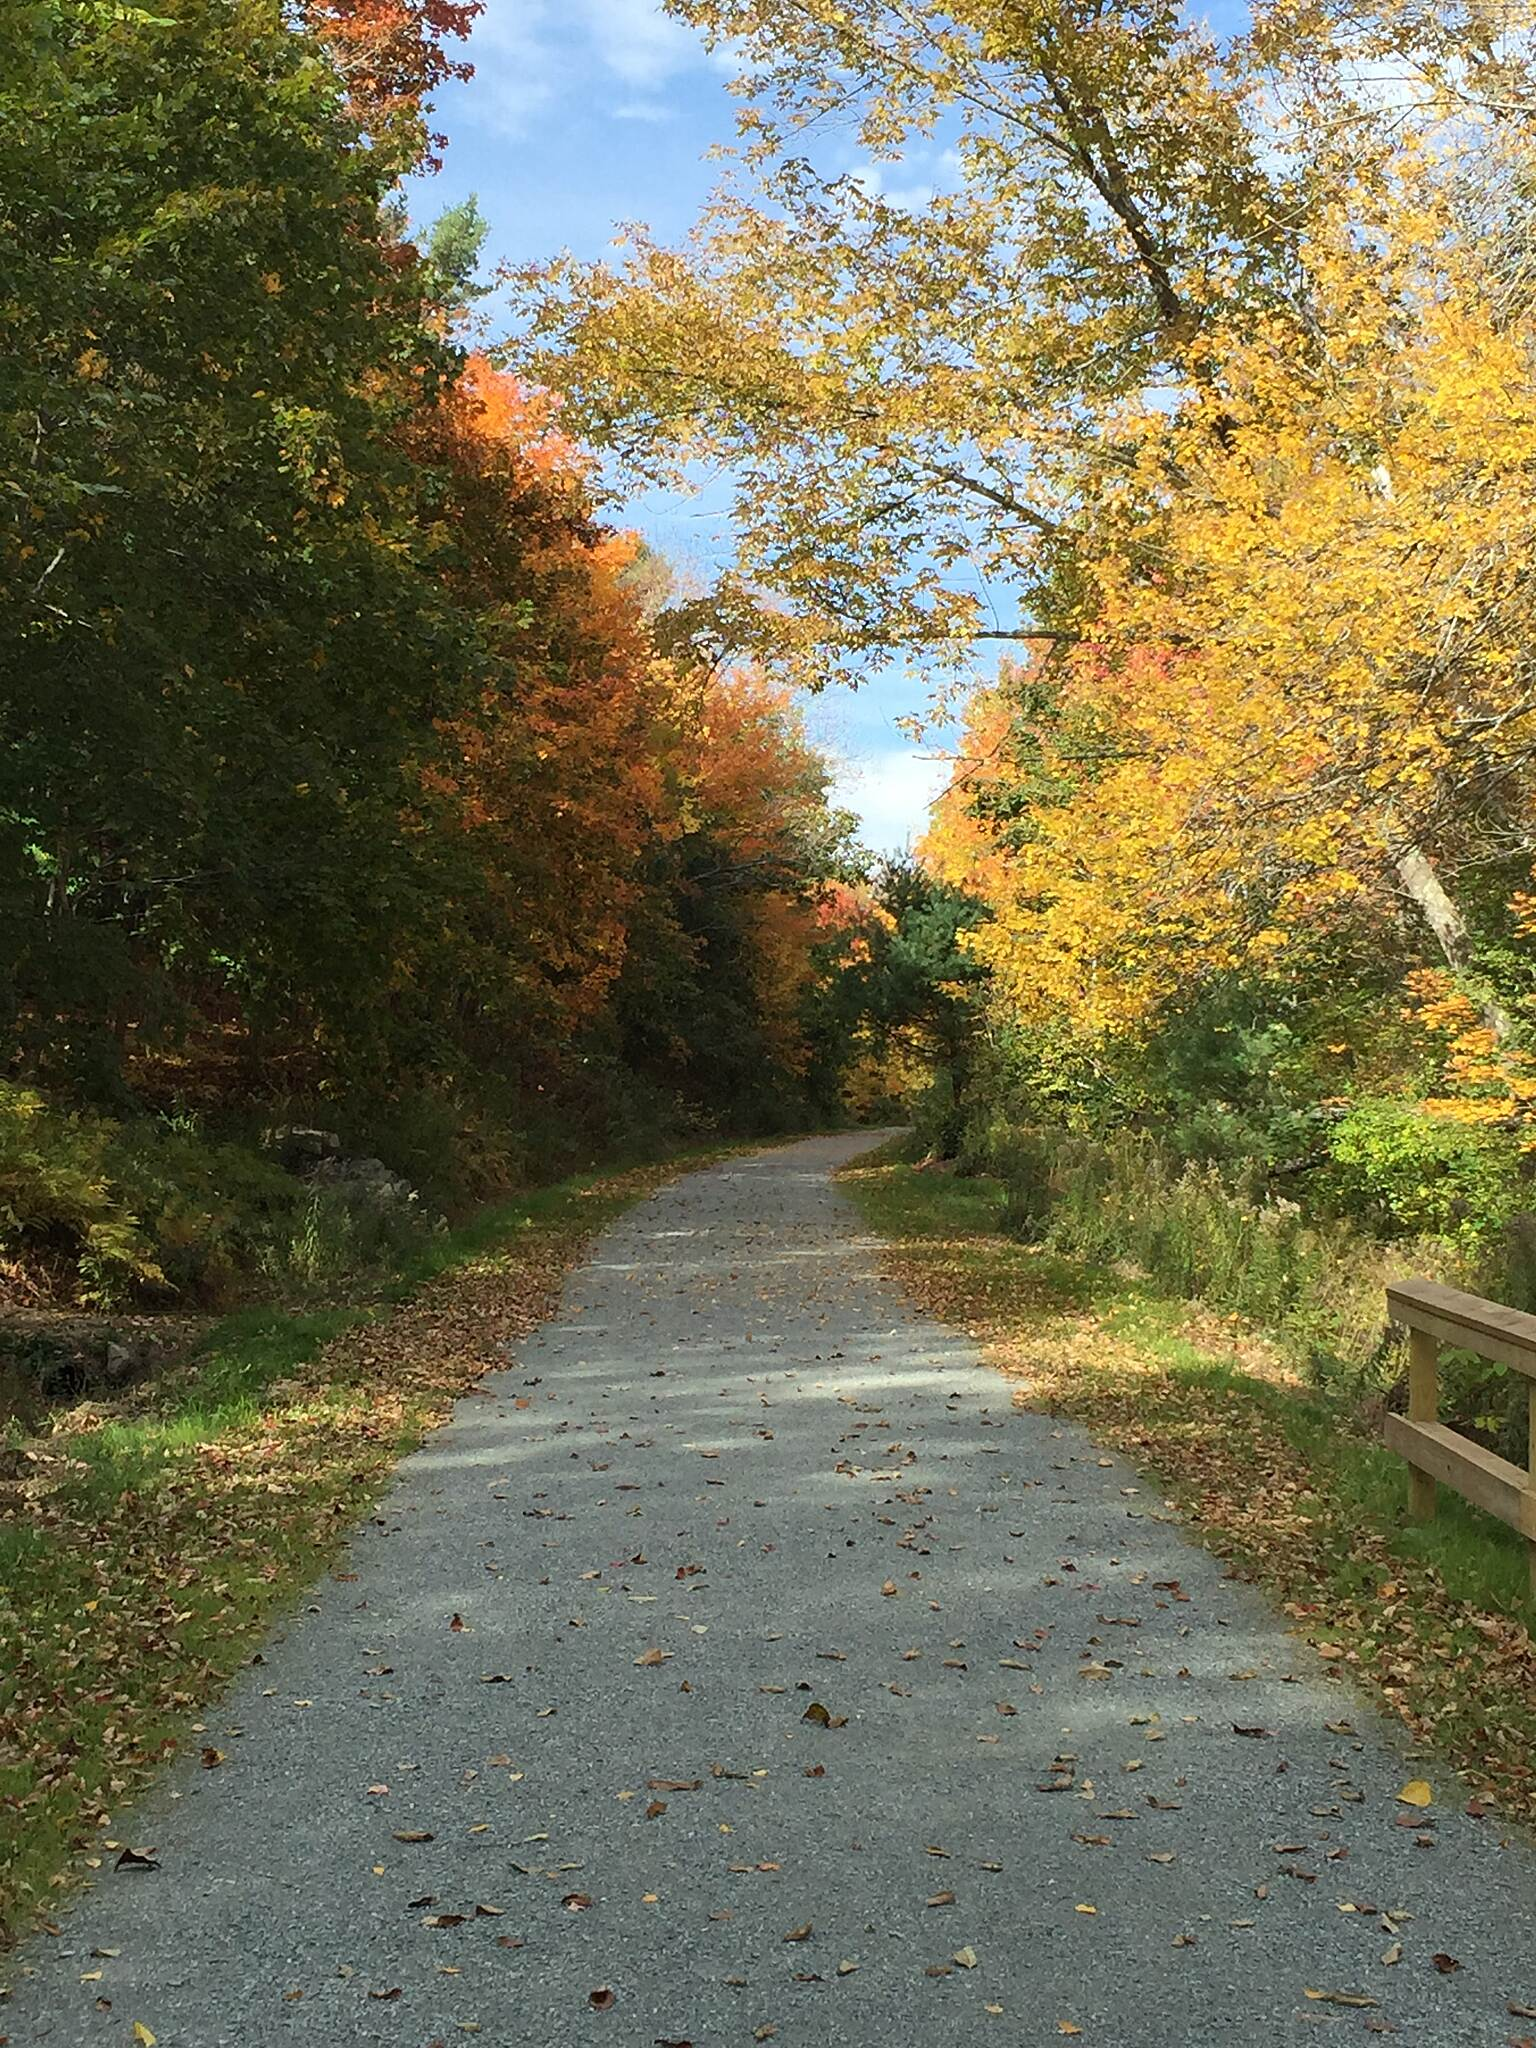 Belfast Rail Trail on the Passagassawaukeag Autumn Colors along the Passy